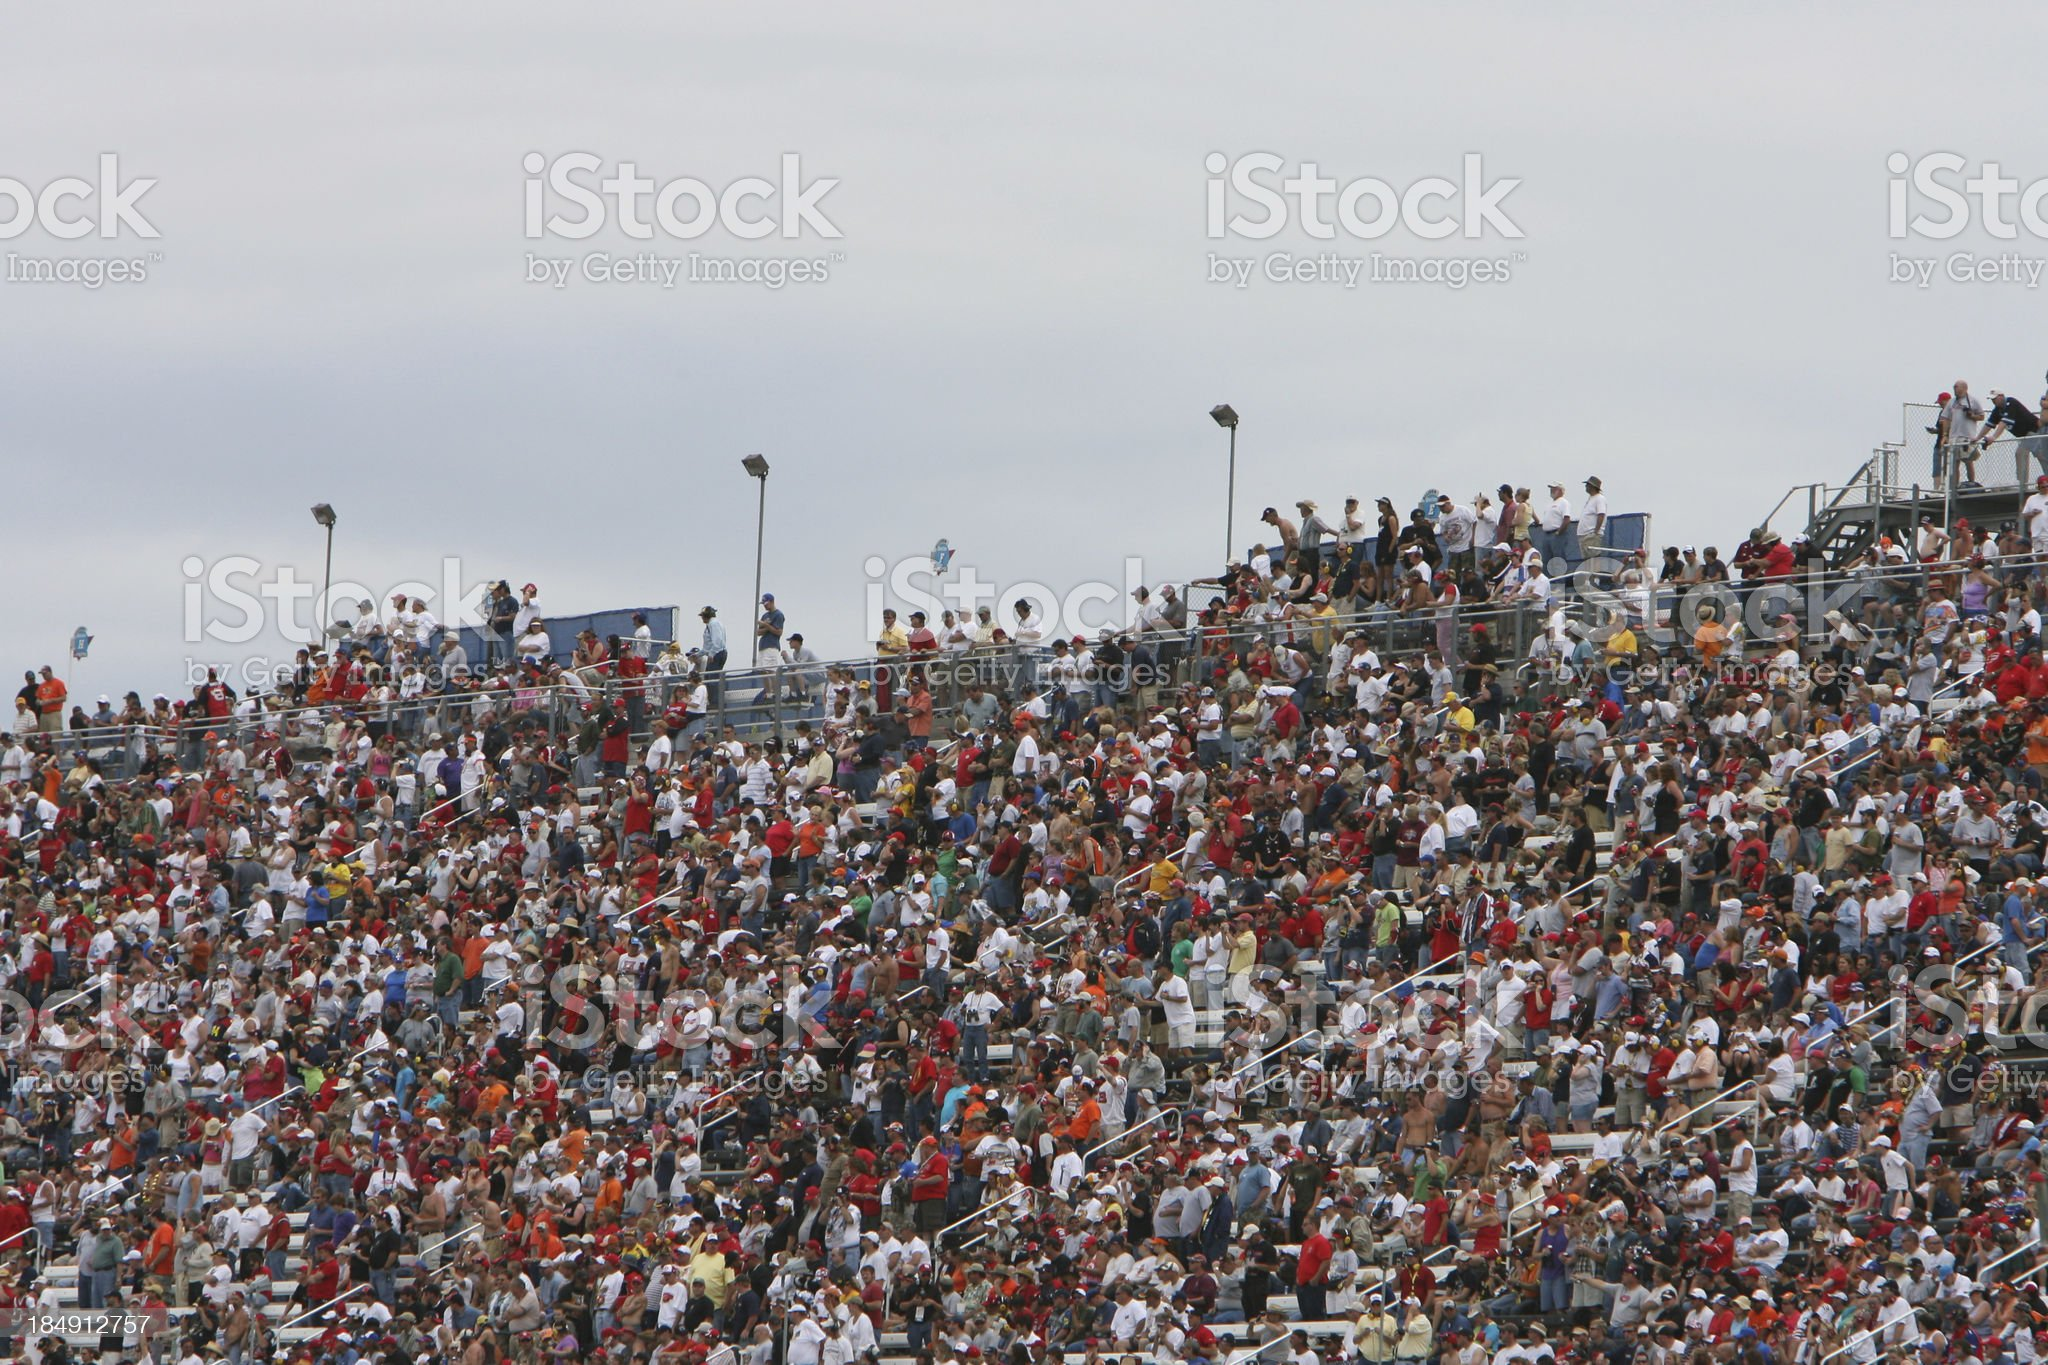 Crowds royalty-free stock photo